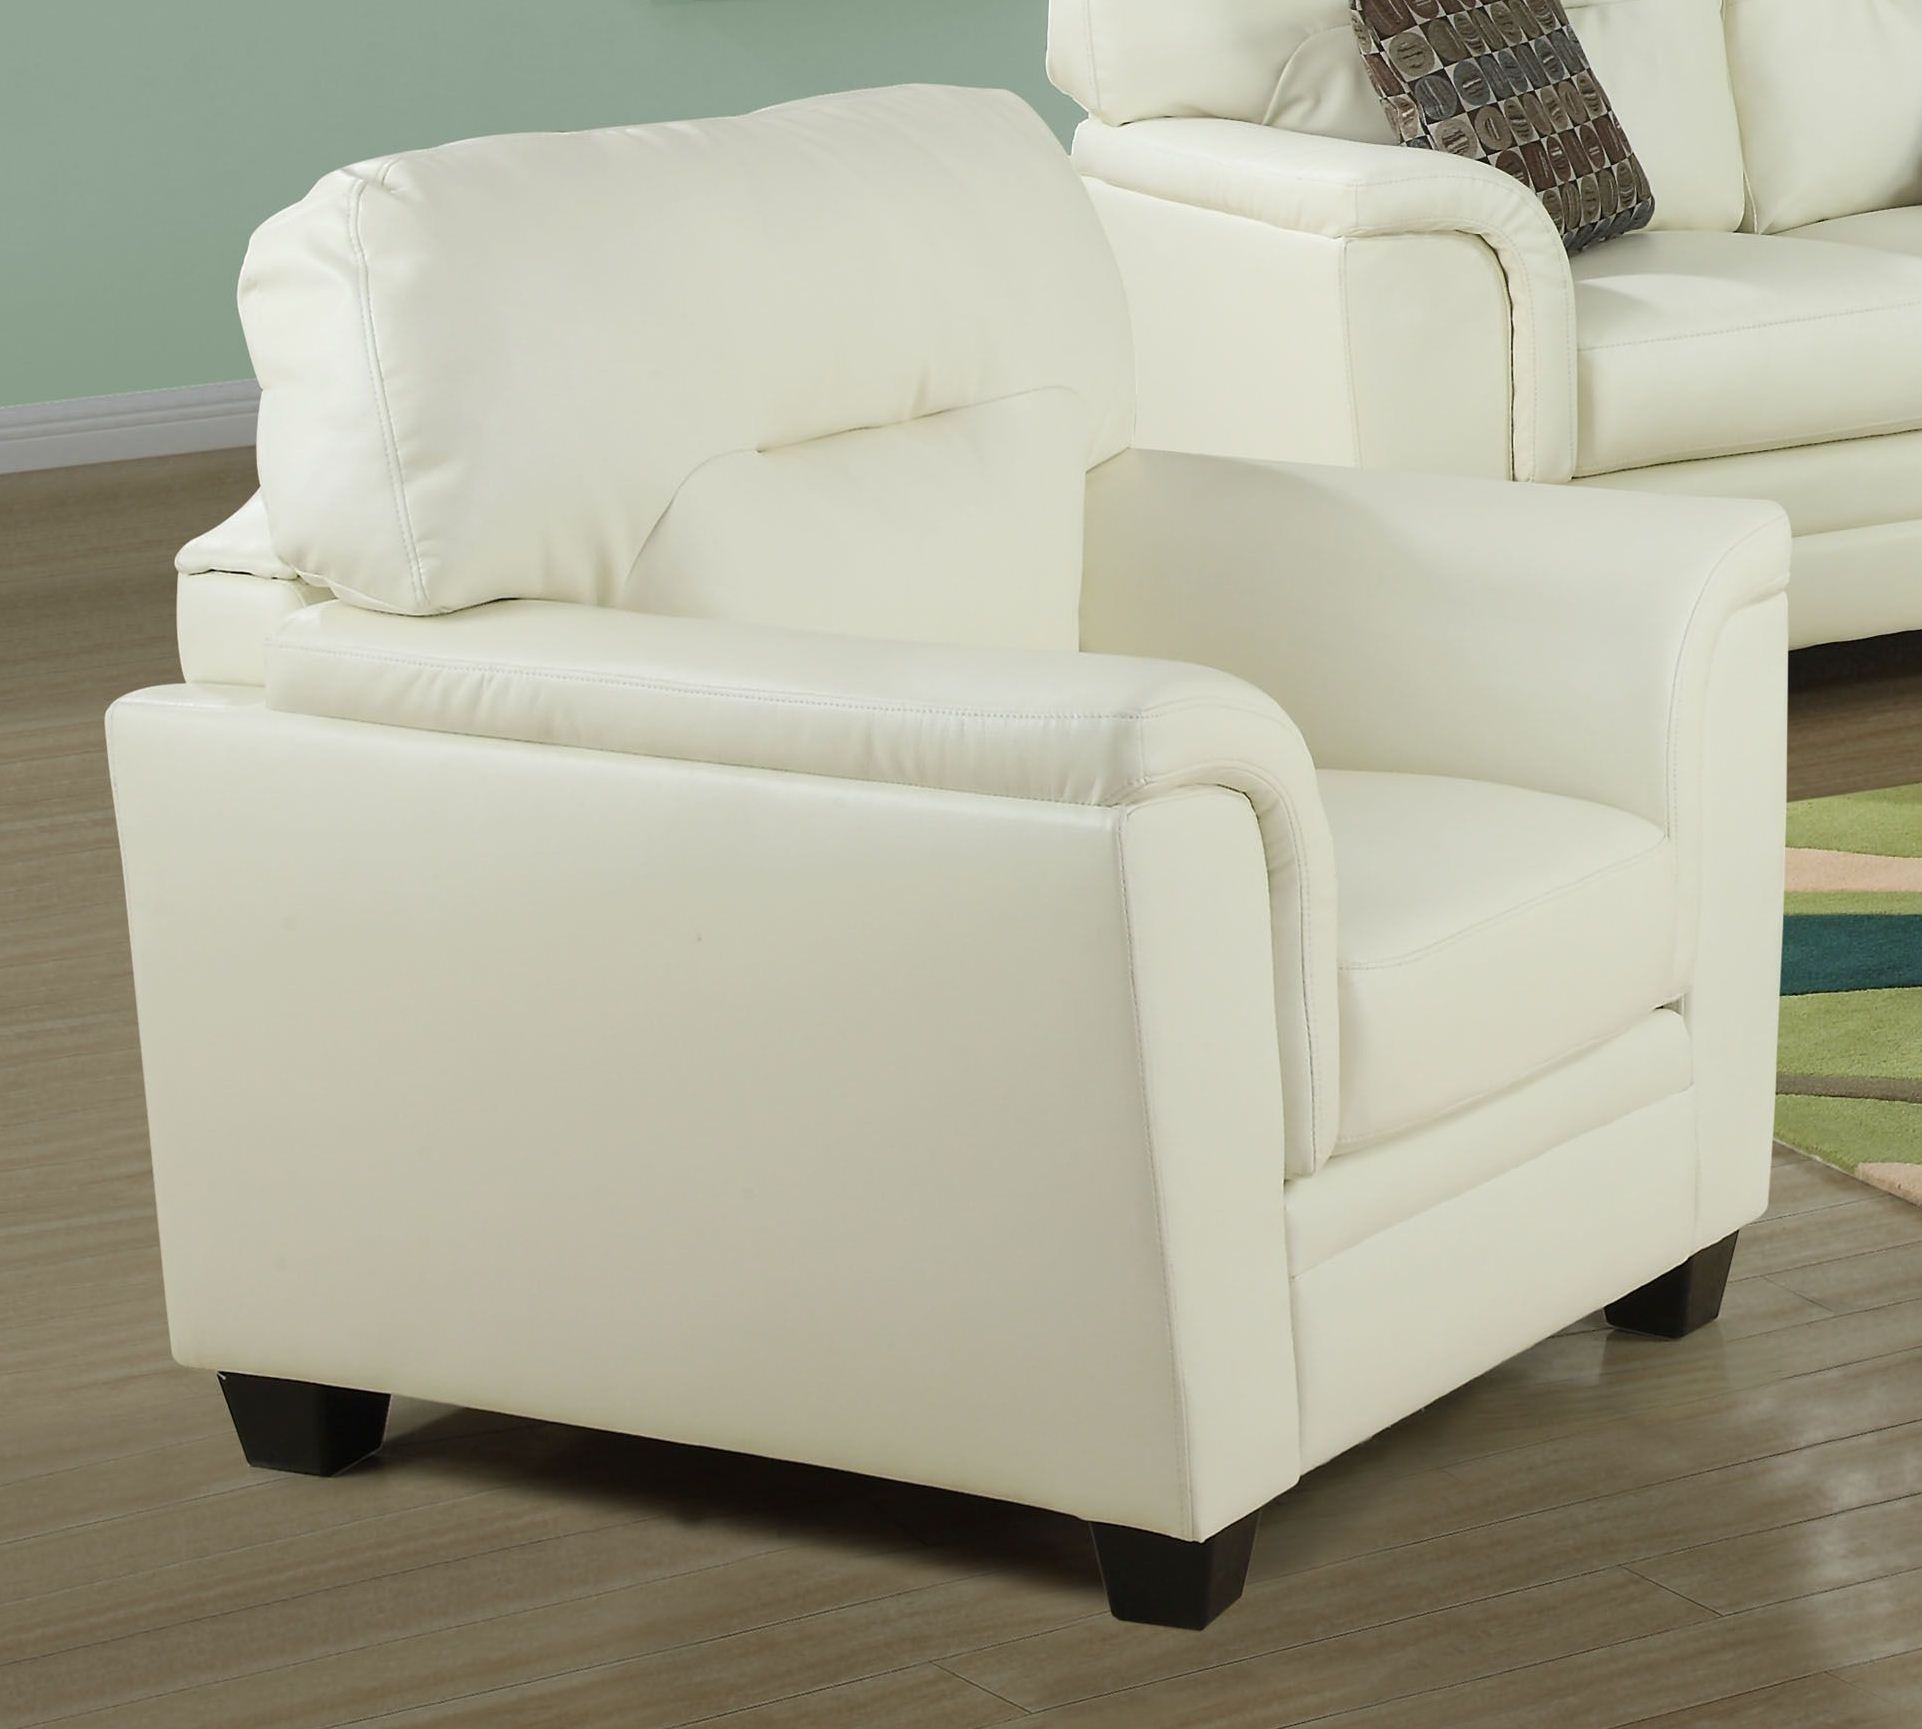 Ivory Chair from Monarch 8961IV  Coleman Furniture